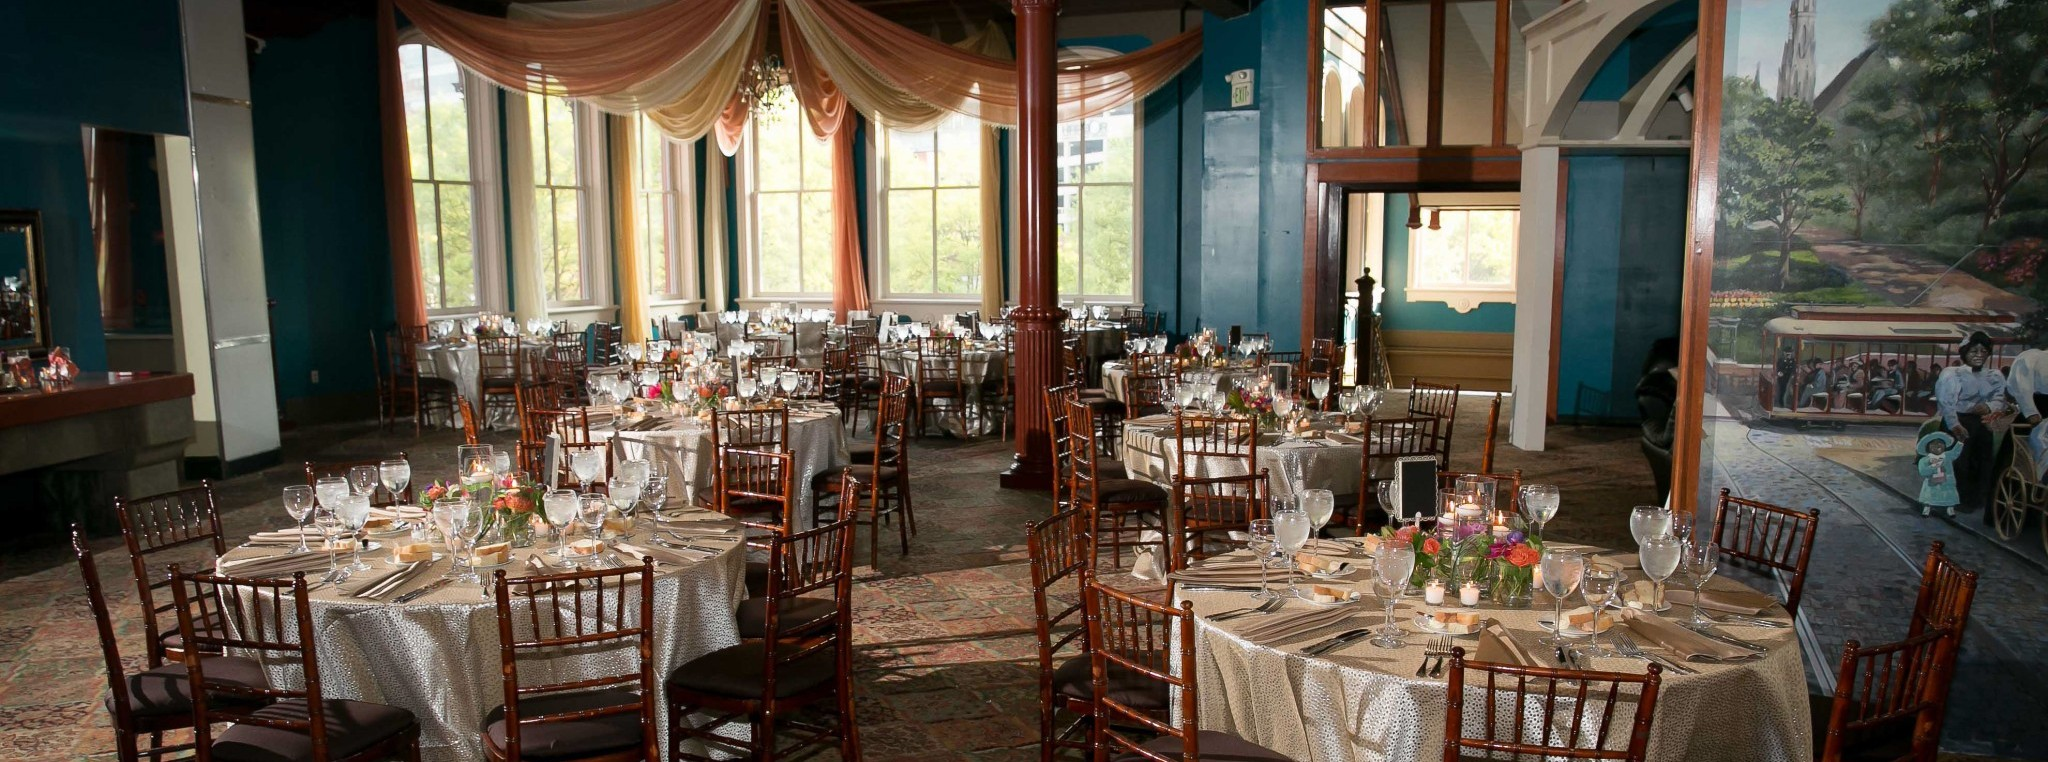 Wedding Reception Set-up in 1840s City Lites - Sachs Photography